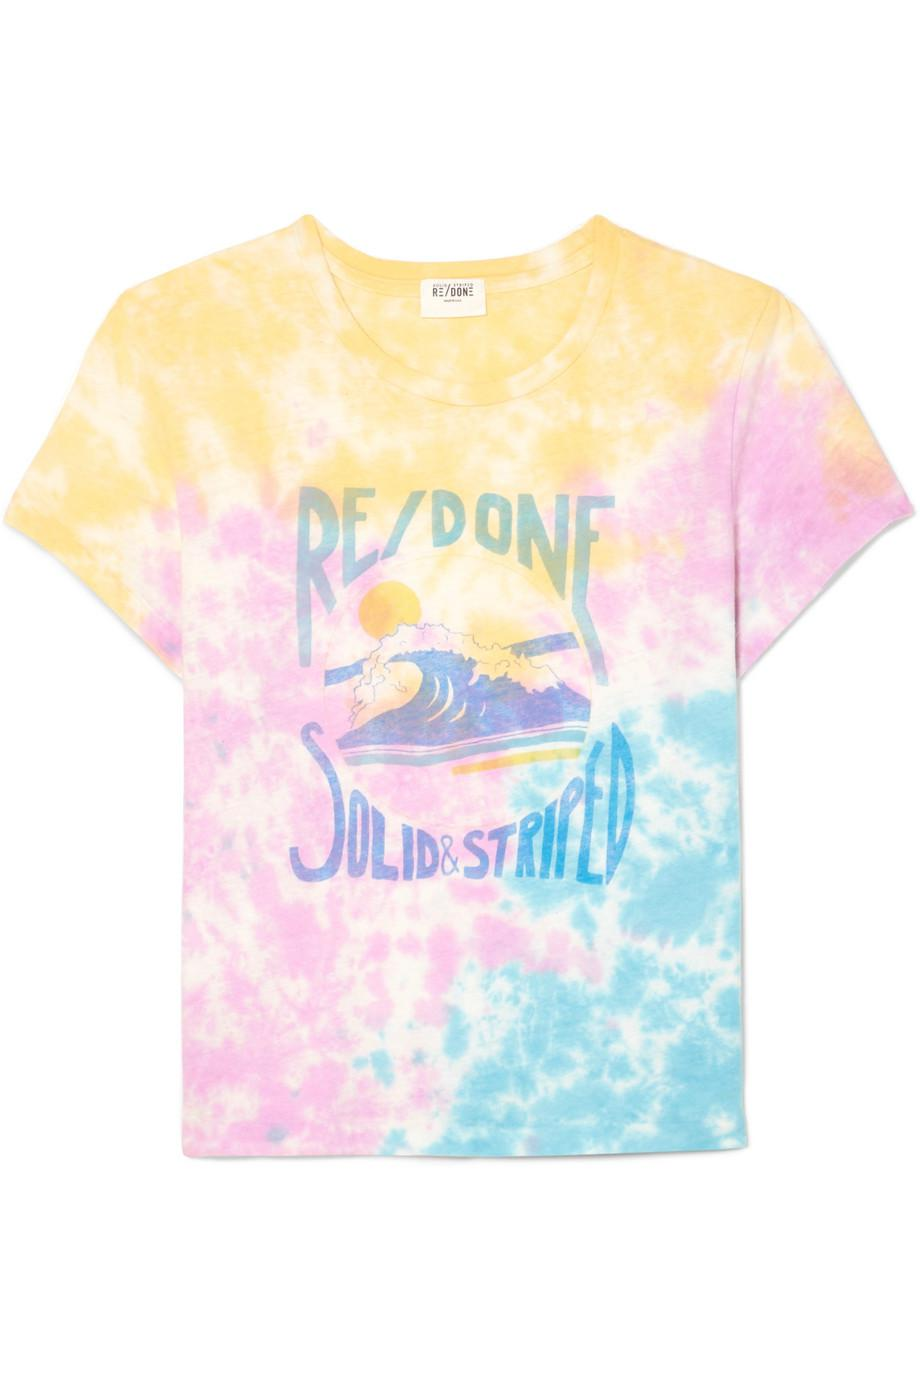 done The Venice Printed Tie-dyed Cotton-jersey T-shirt H8H9MzN